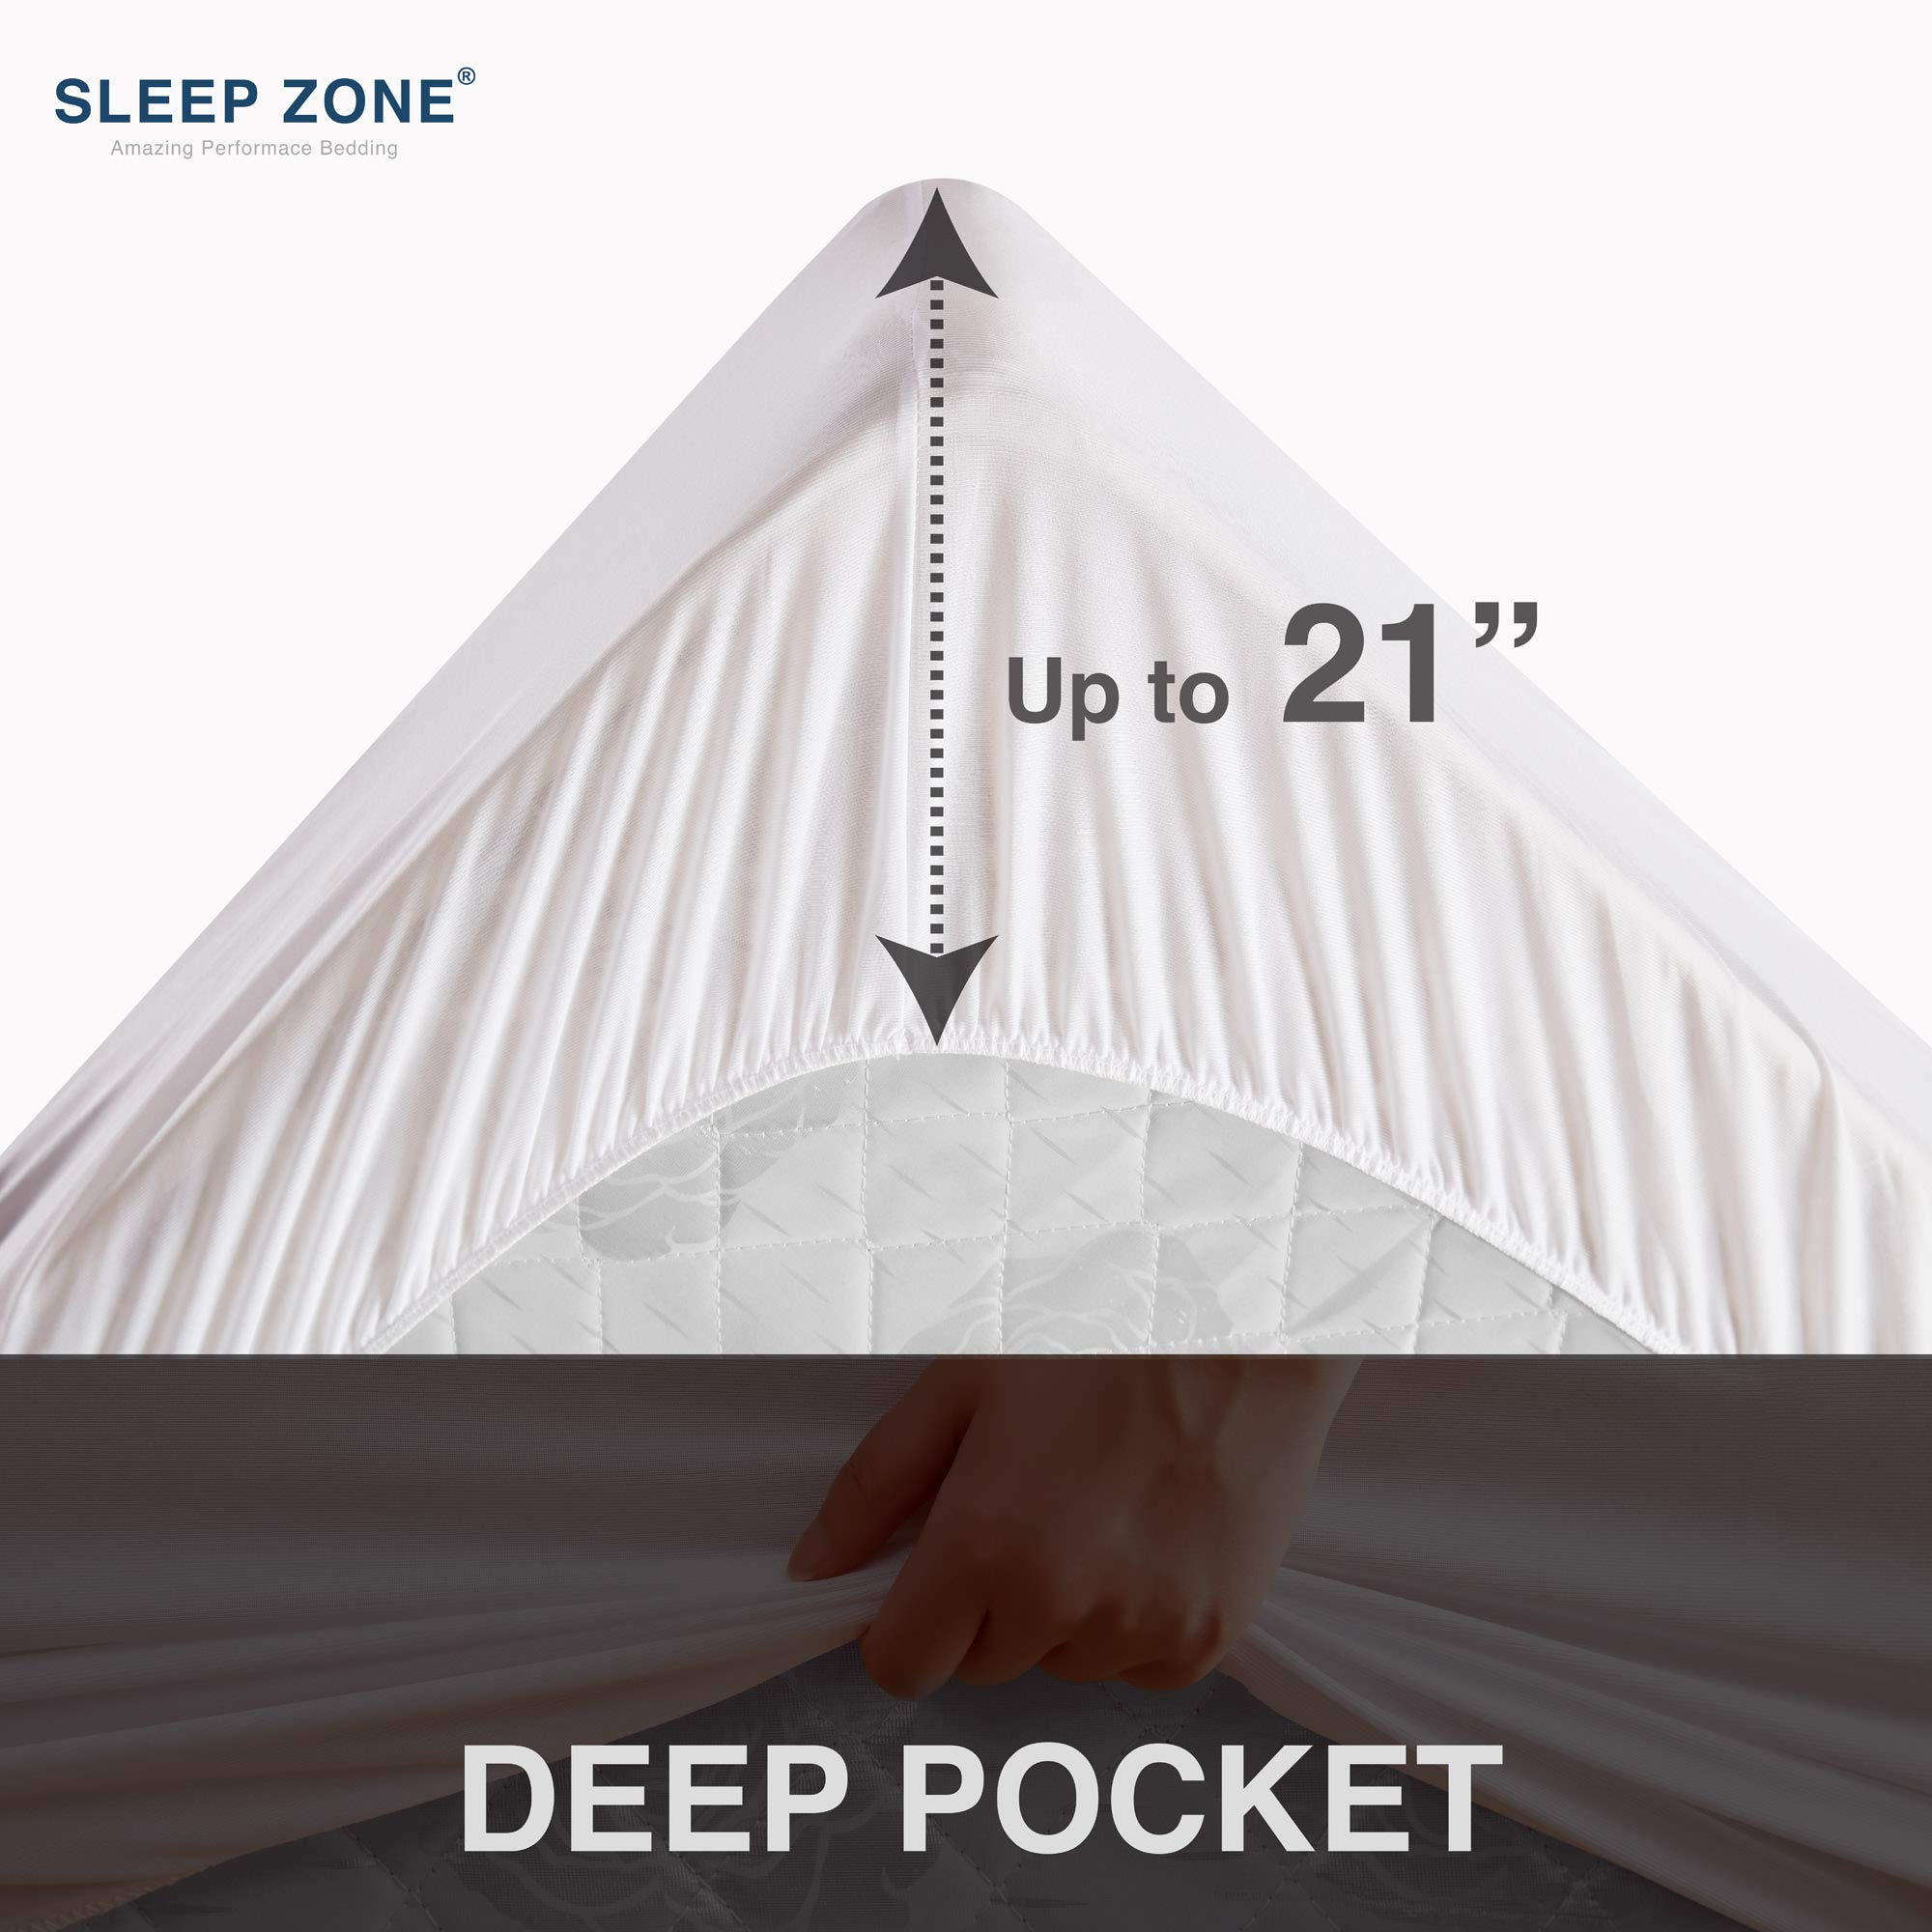 Sleep Zone Quilted Mattress Pad Cover Queen Cooling Fluffy Topper Upto 21 inch Pocket,White,Queen